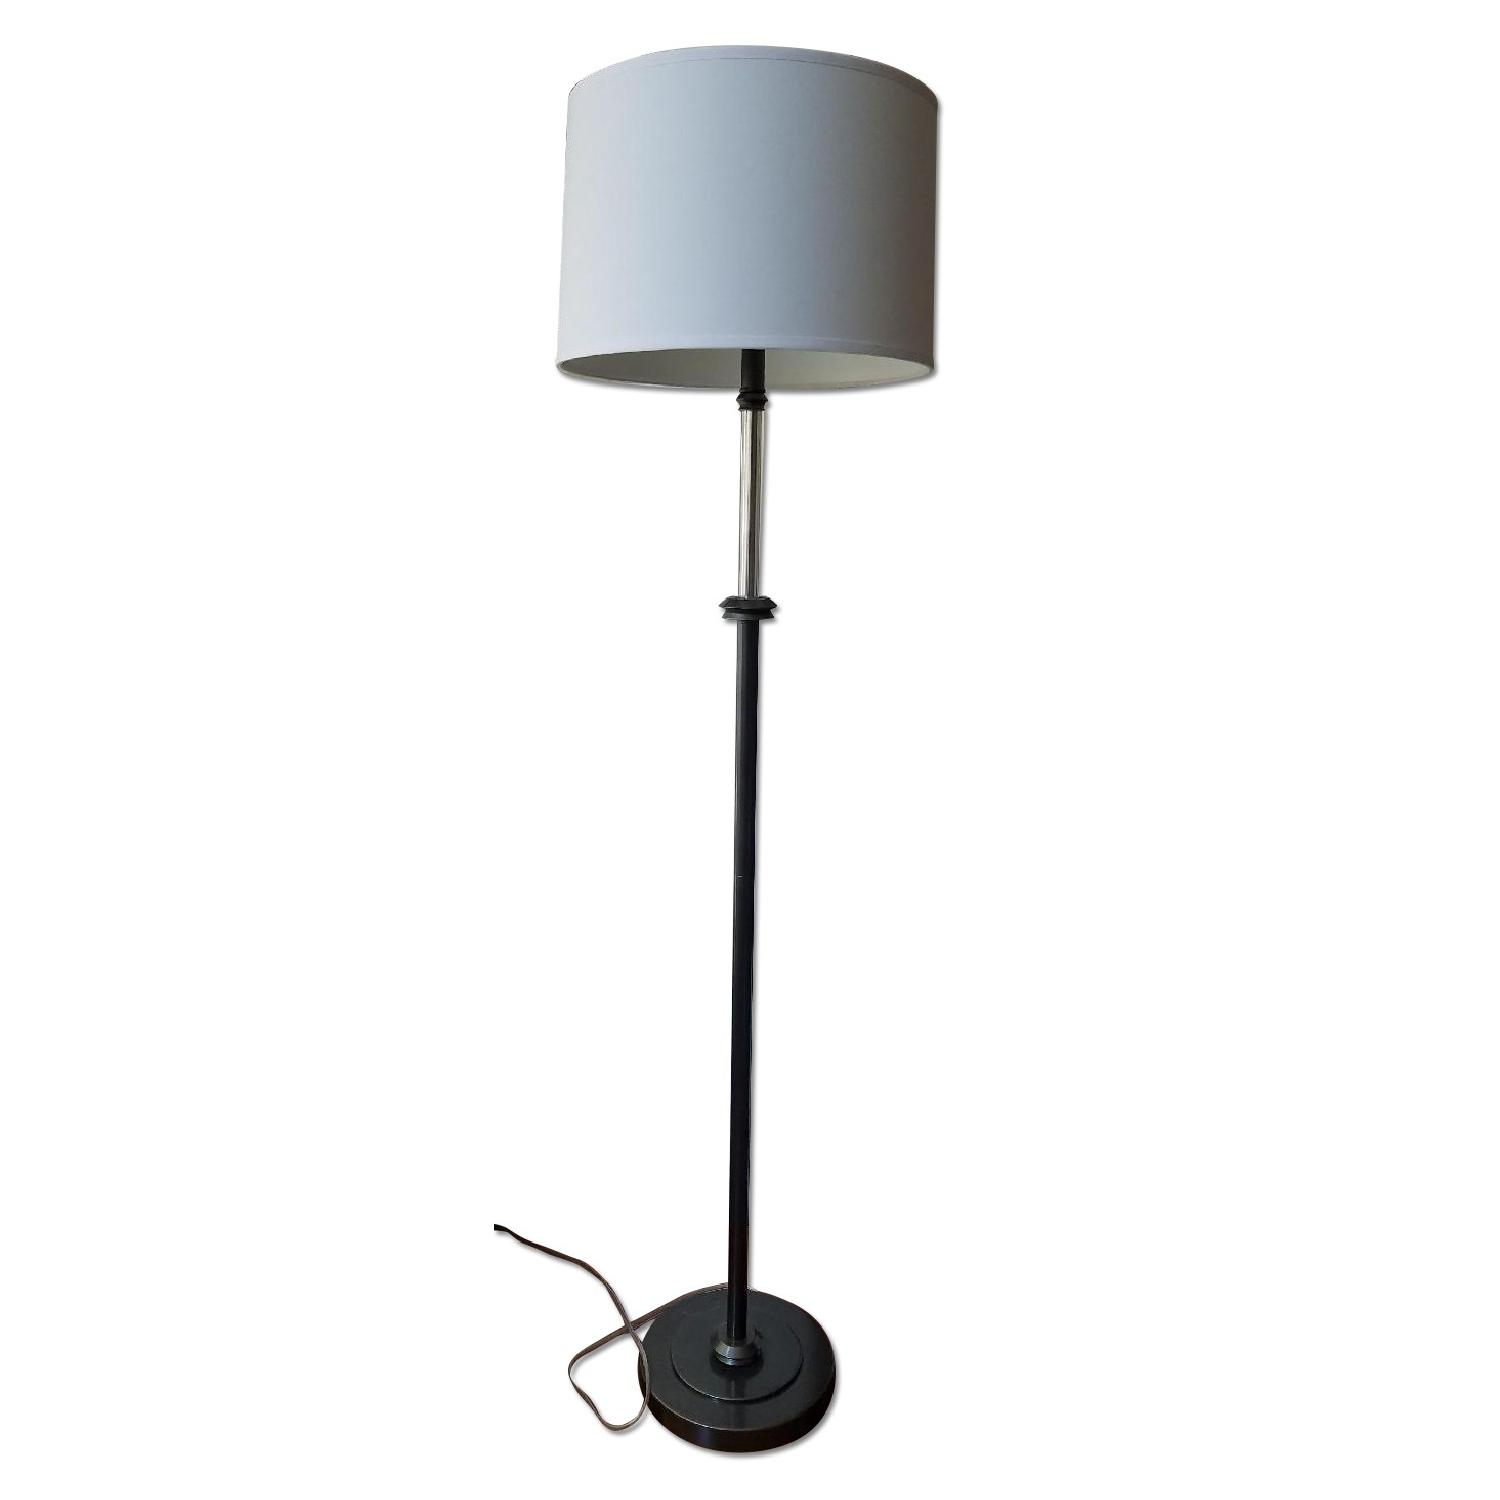 Lamps Plus Clear Acrylic Column Floor Lamp In Oil Rubbed